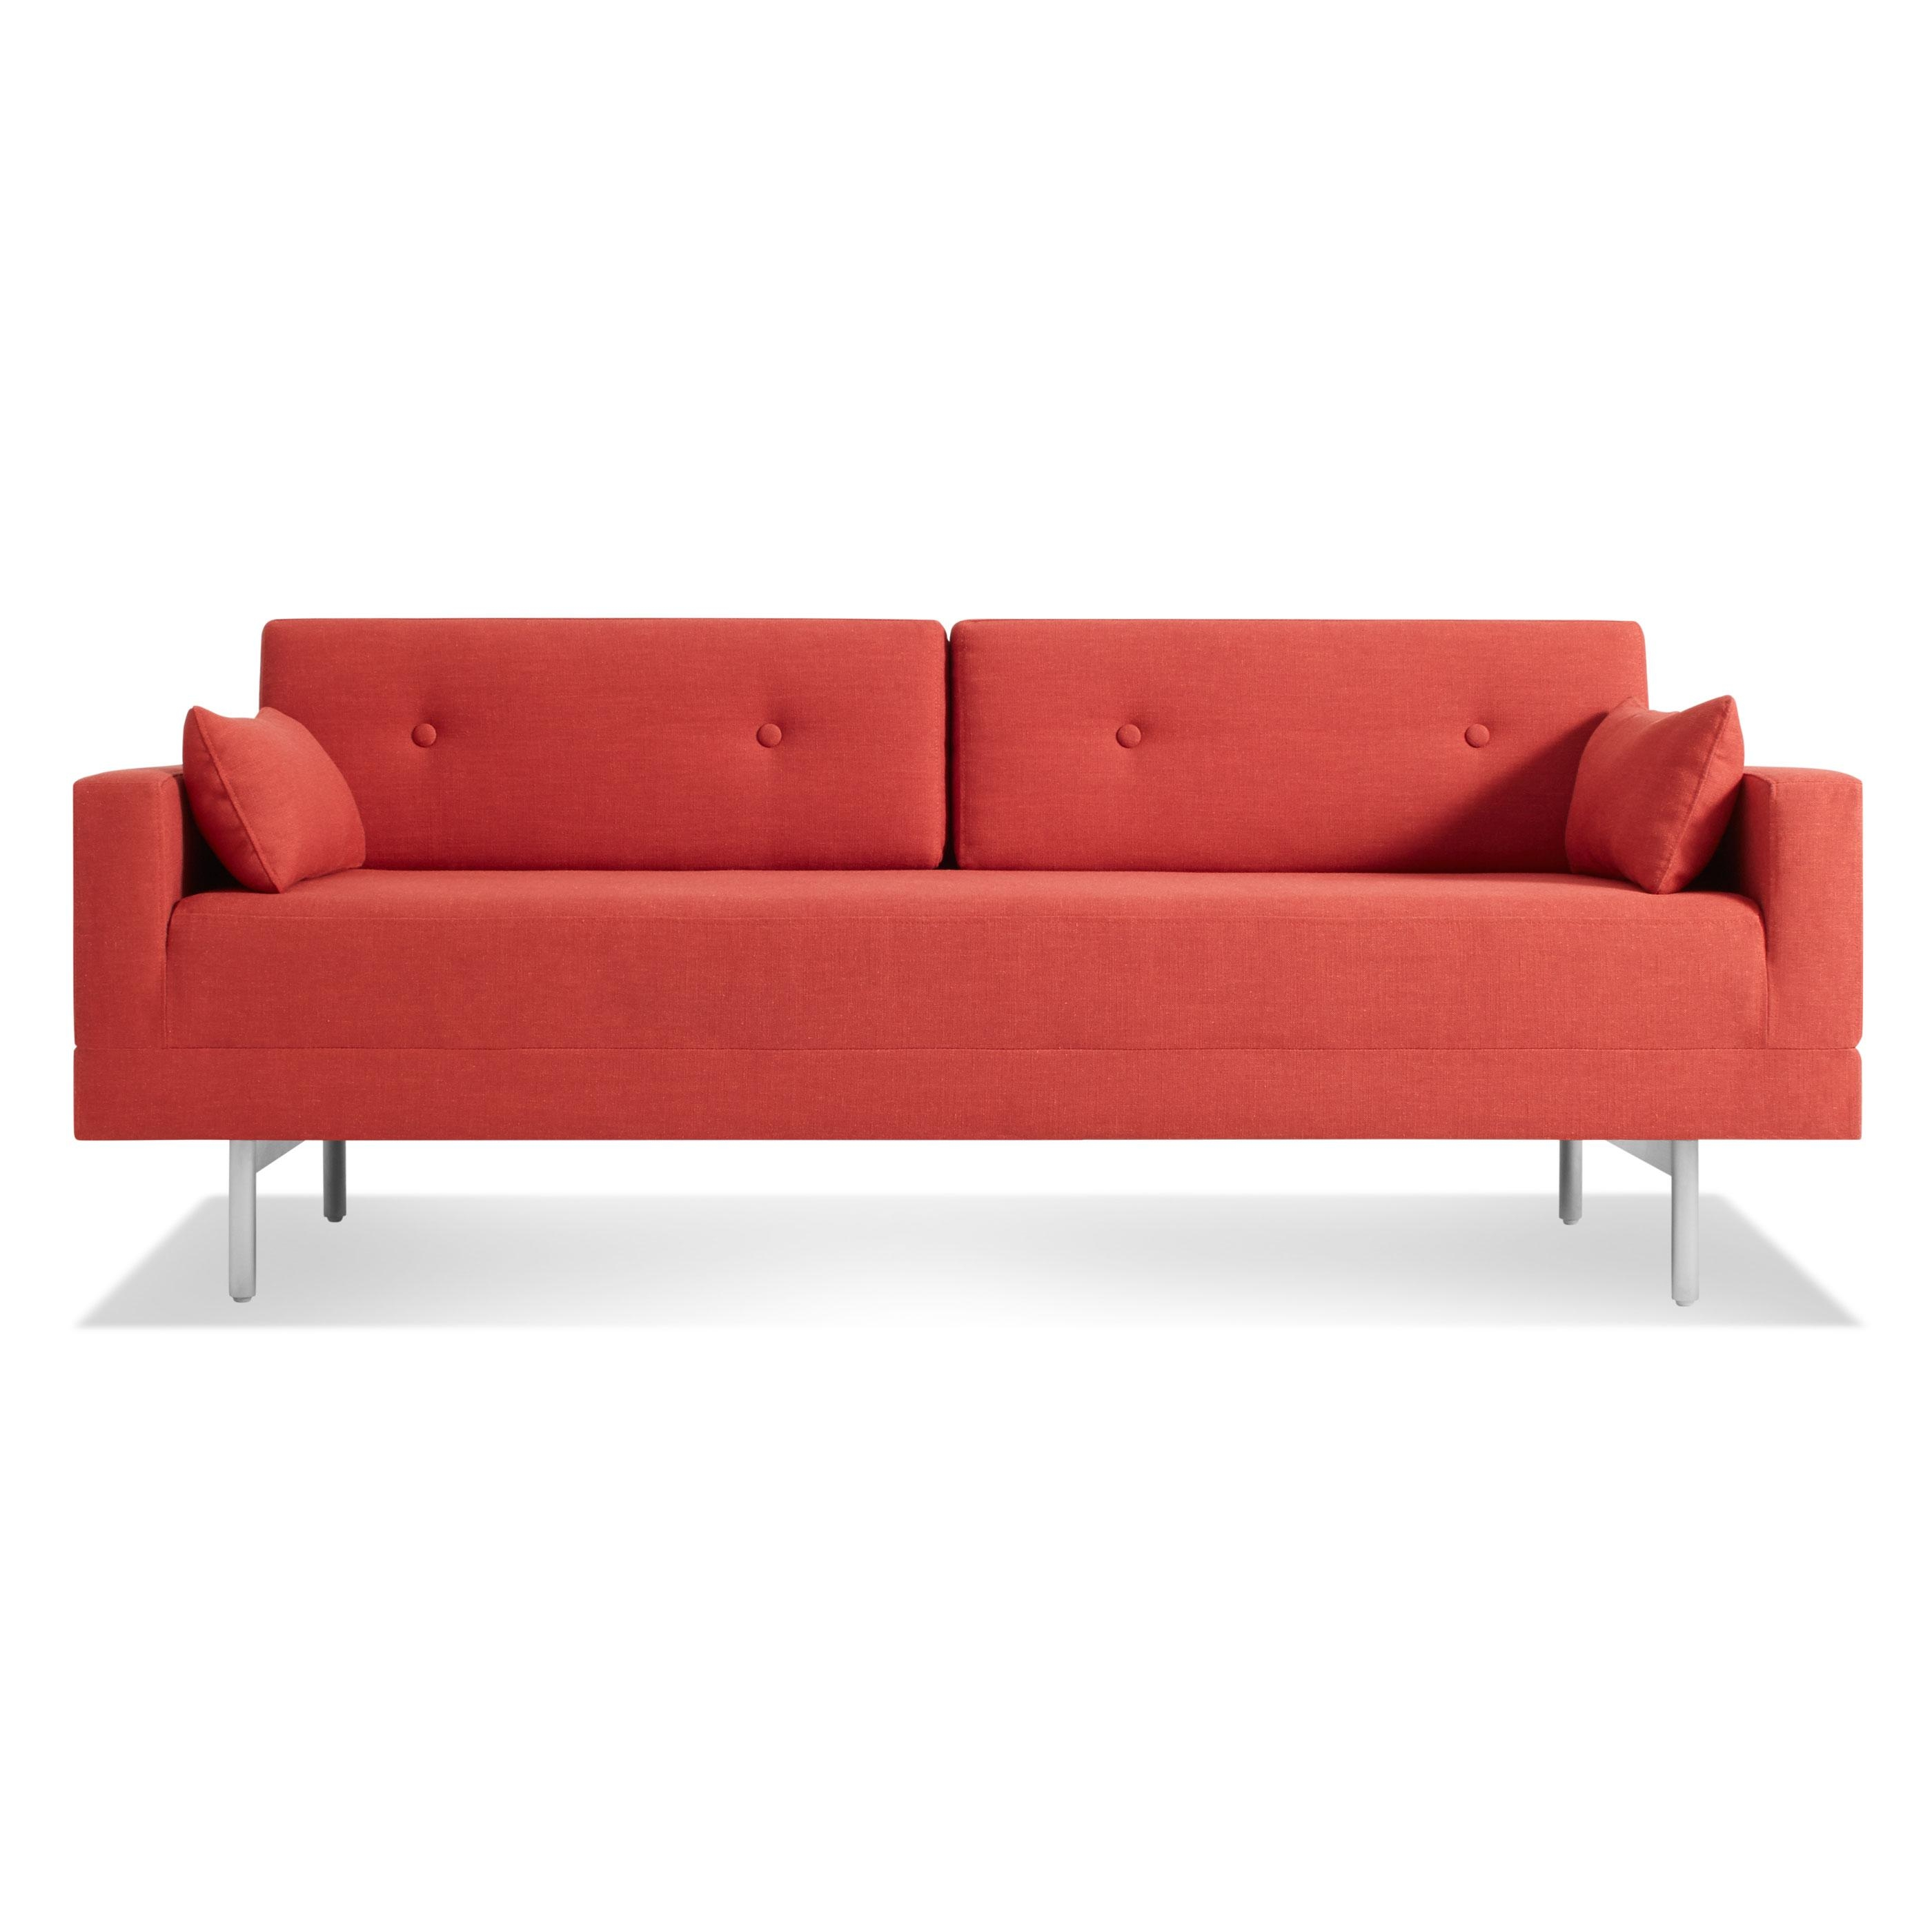 One Night Stand Modern Queen Sleeper Sofa | Blu Dot With Blu Dot Sleeper Sofas (View 2 of 20)